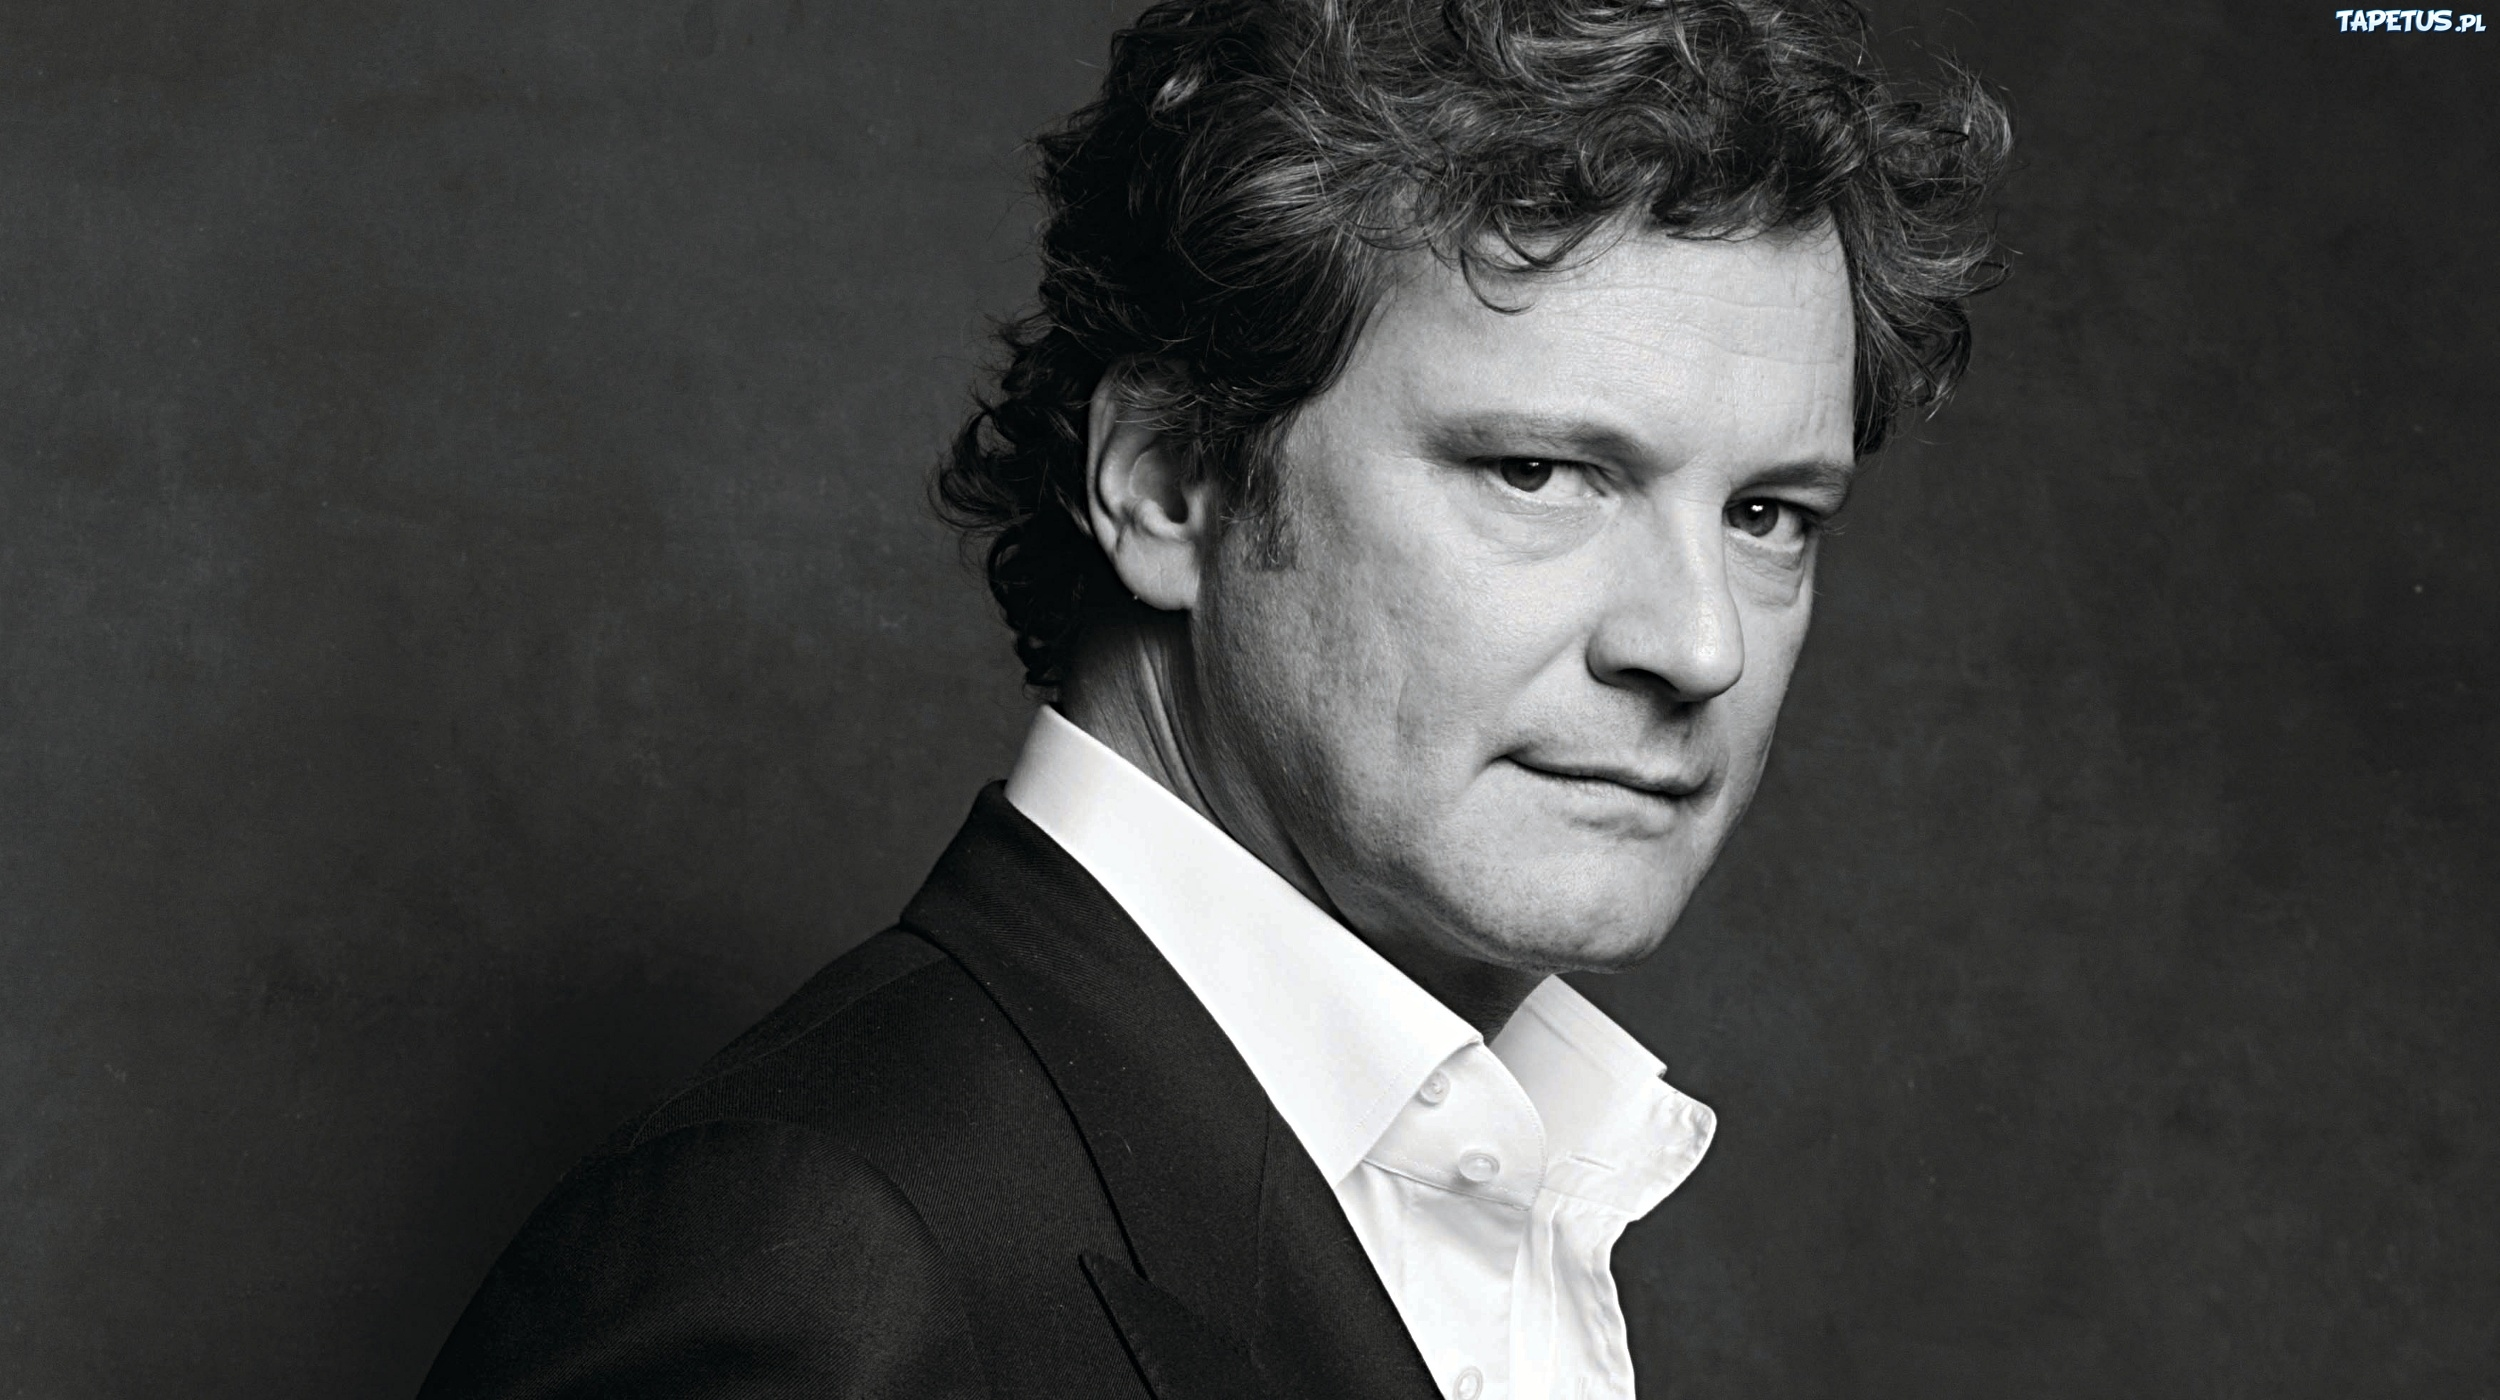 Colin Firth, aktor, m�...